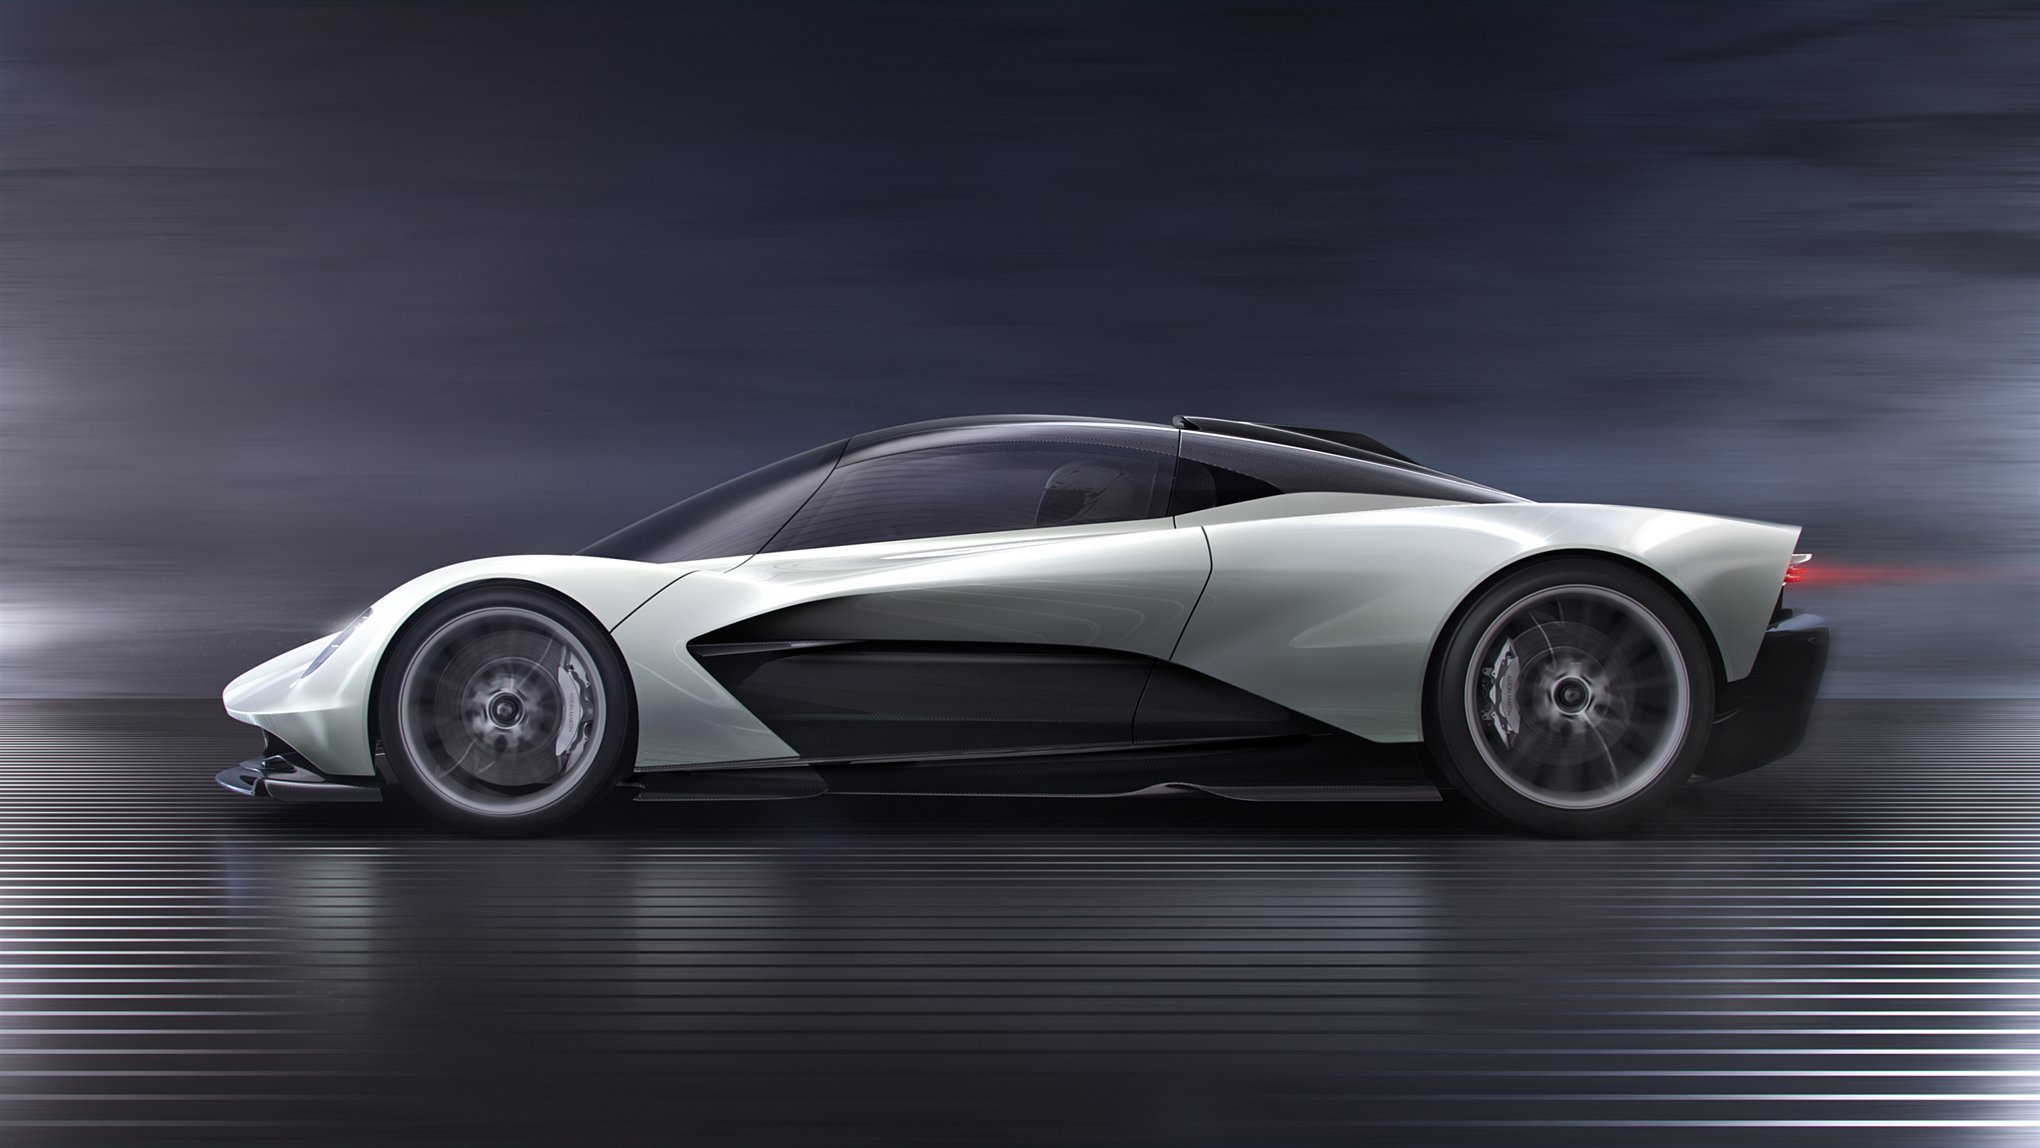 Aston Martin's new hypercar makes you use your smartphone as the